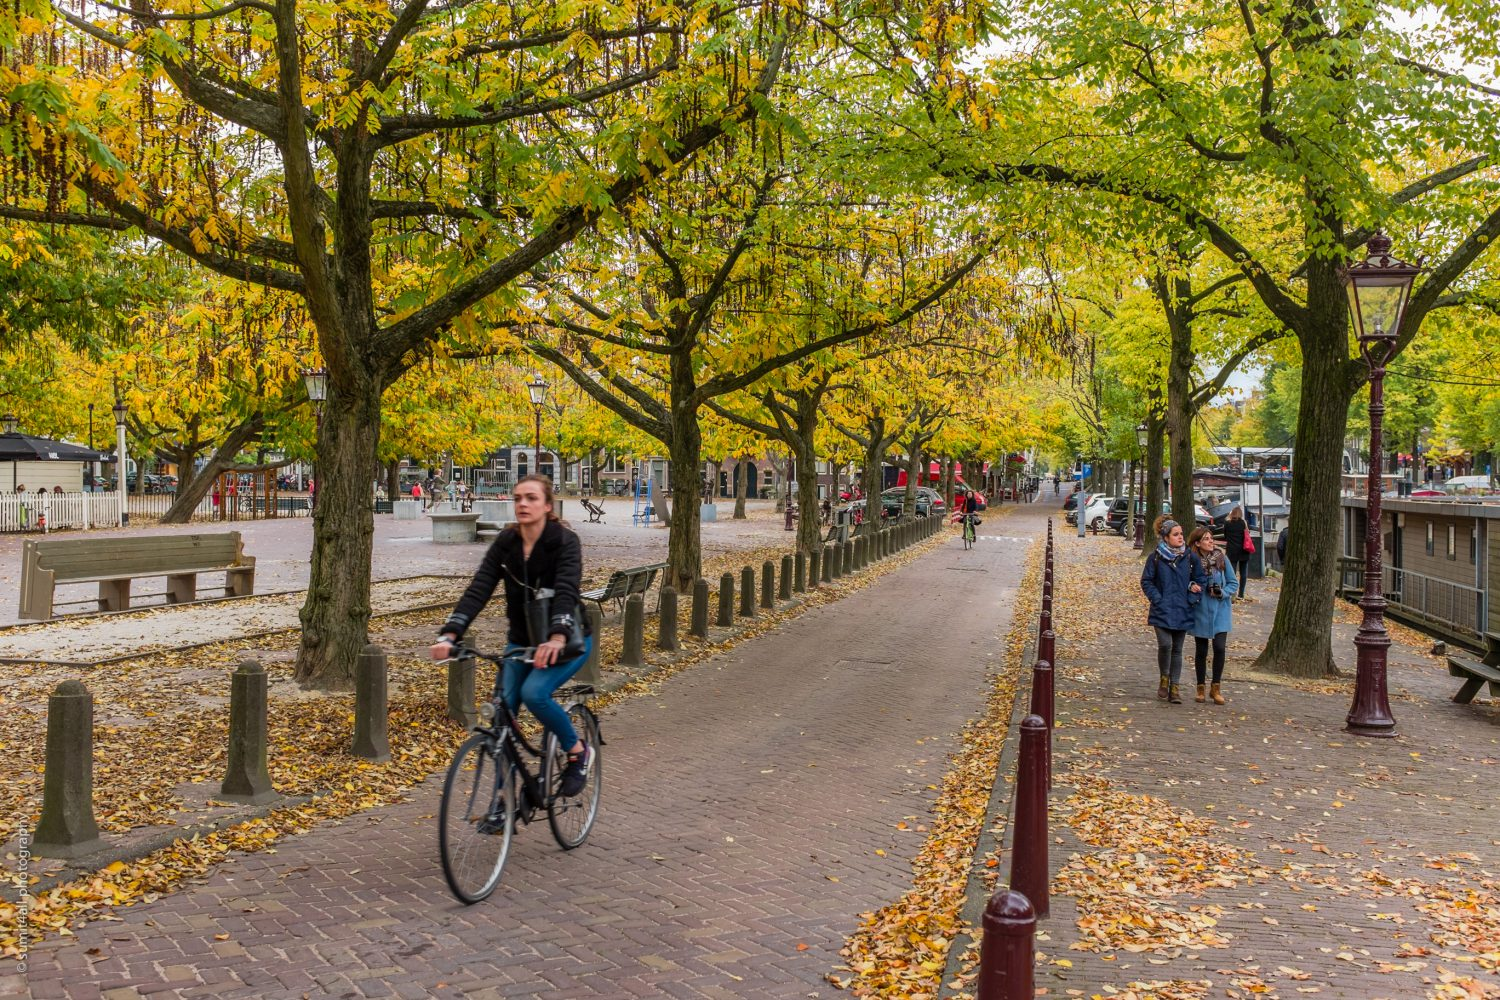 Biking in Amsterdam during Fall